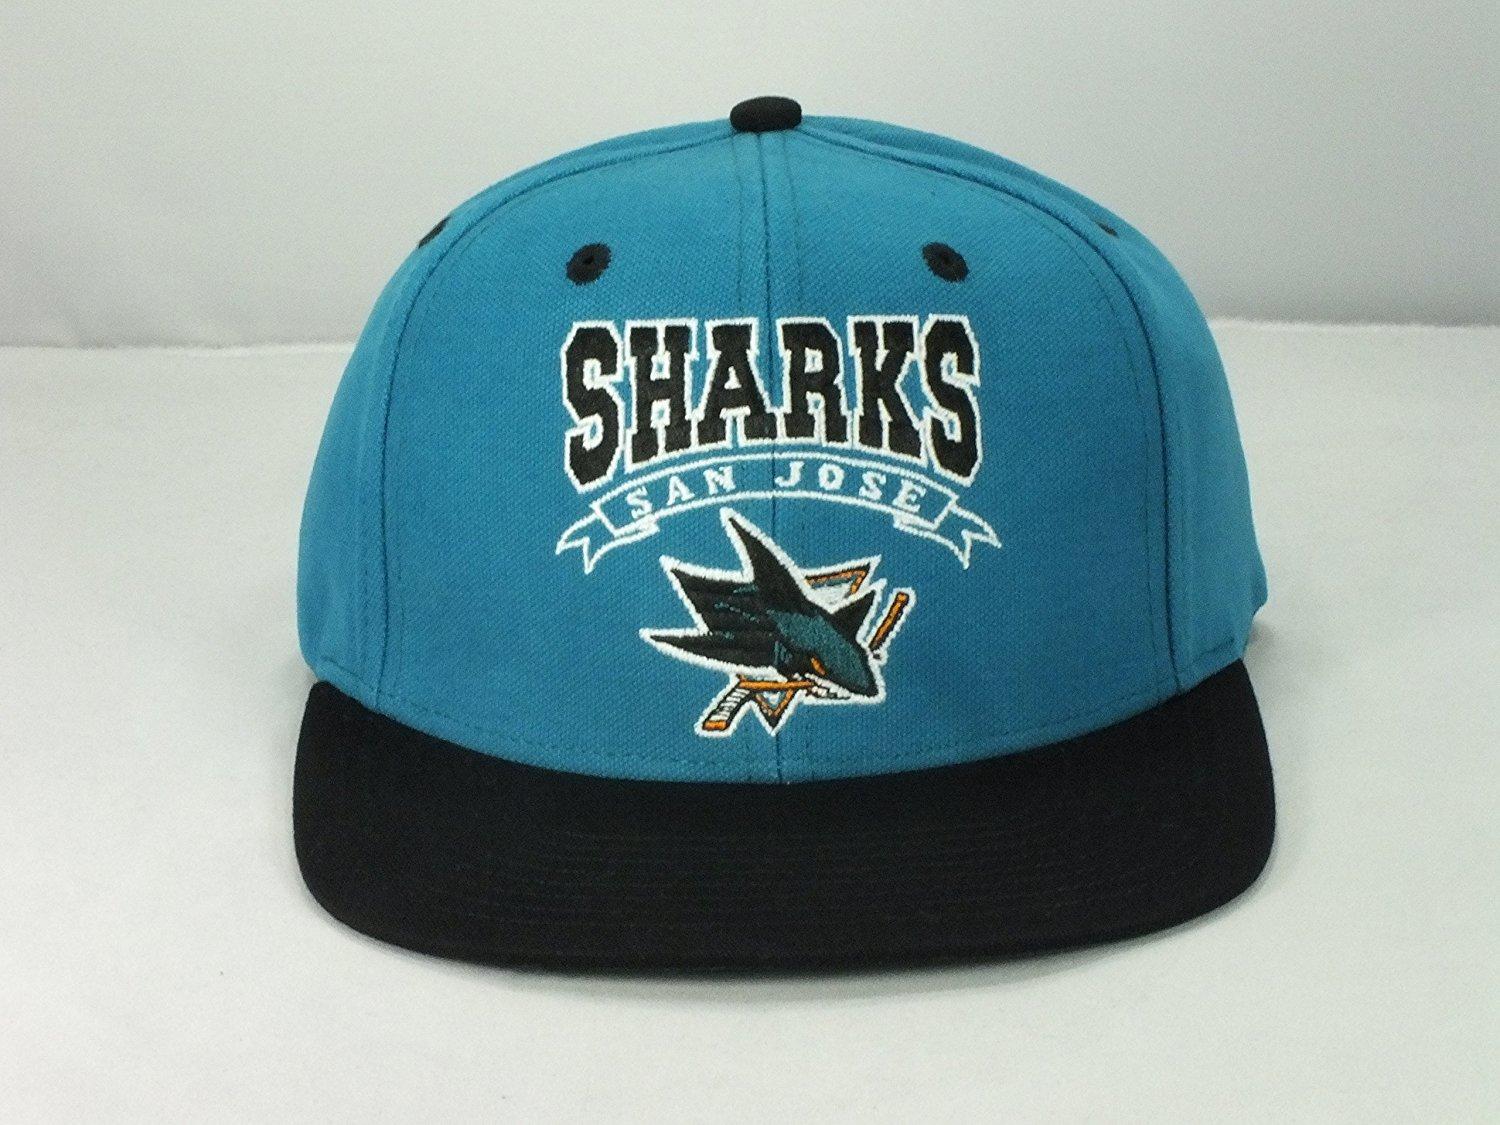 low priced 522d3 e8897 Get Quotations · San Jose Sharks Nhl Adult Retro Snapback Flat Brim Hat D24